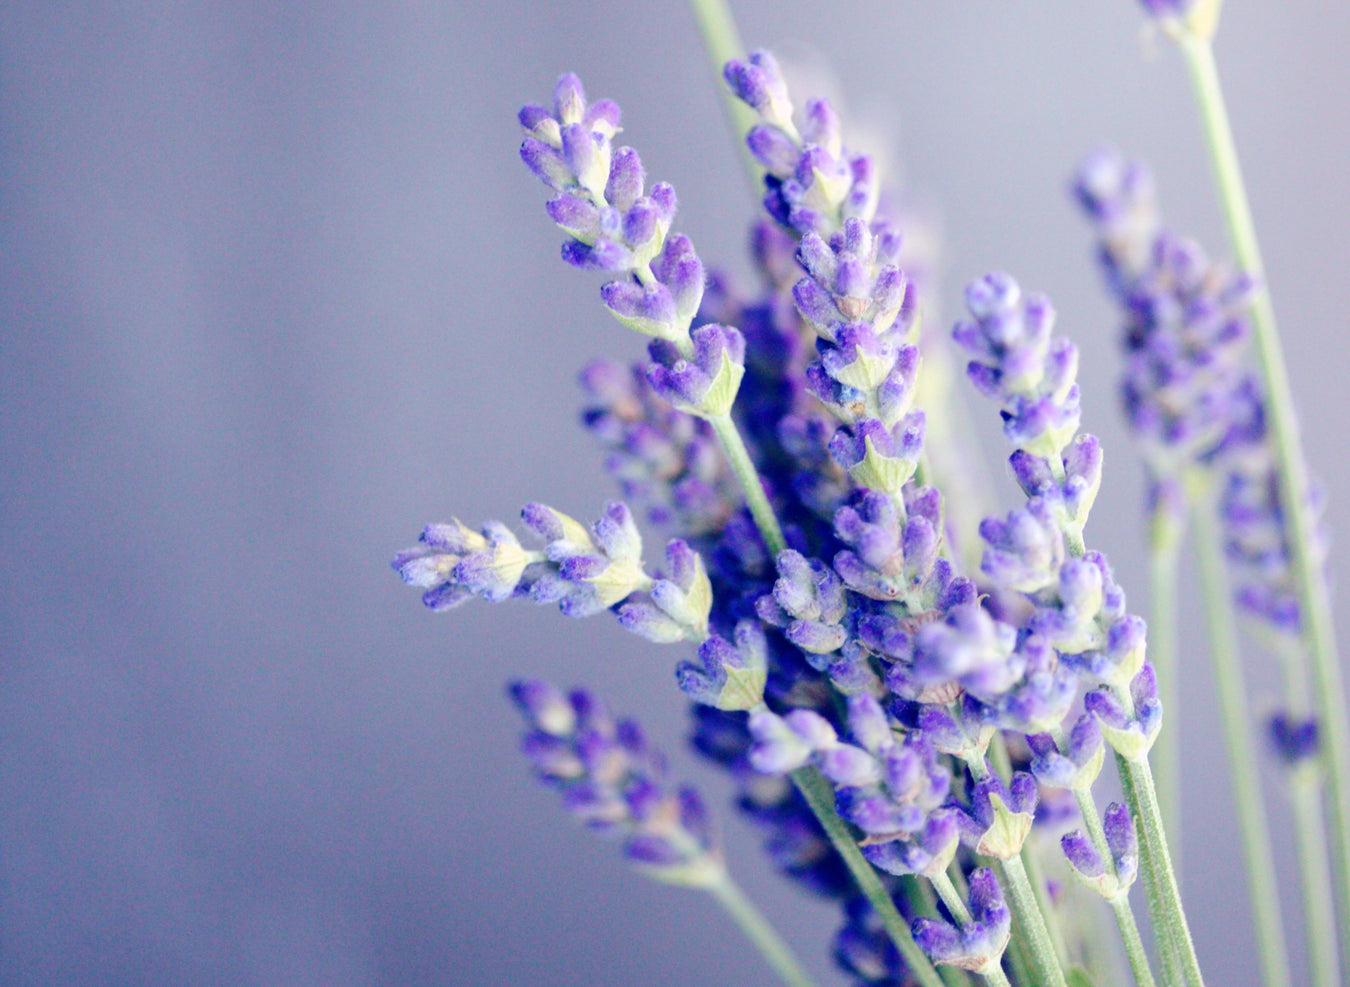 lavender-close-up-plant-based